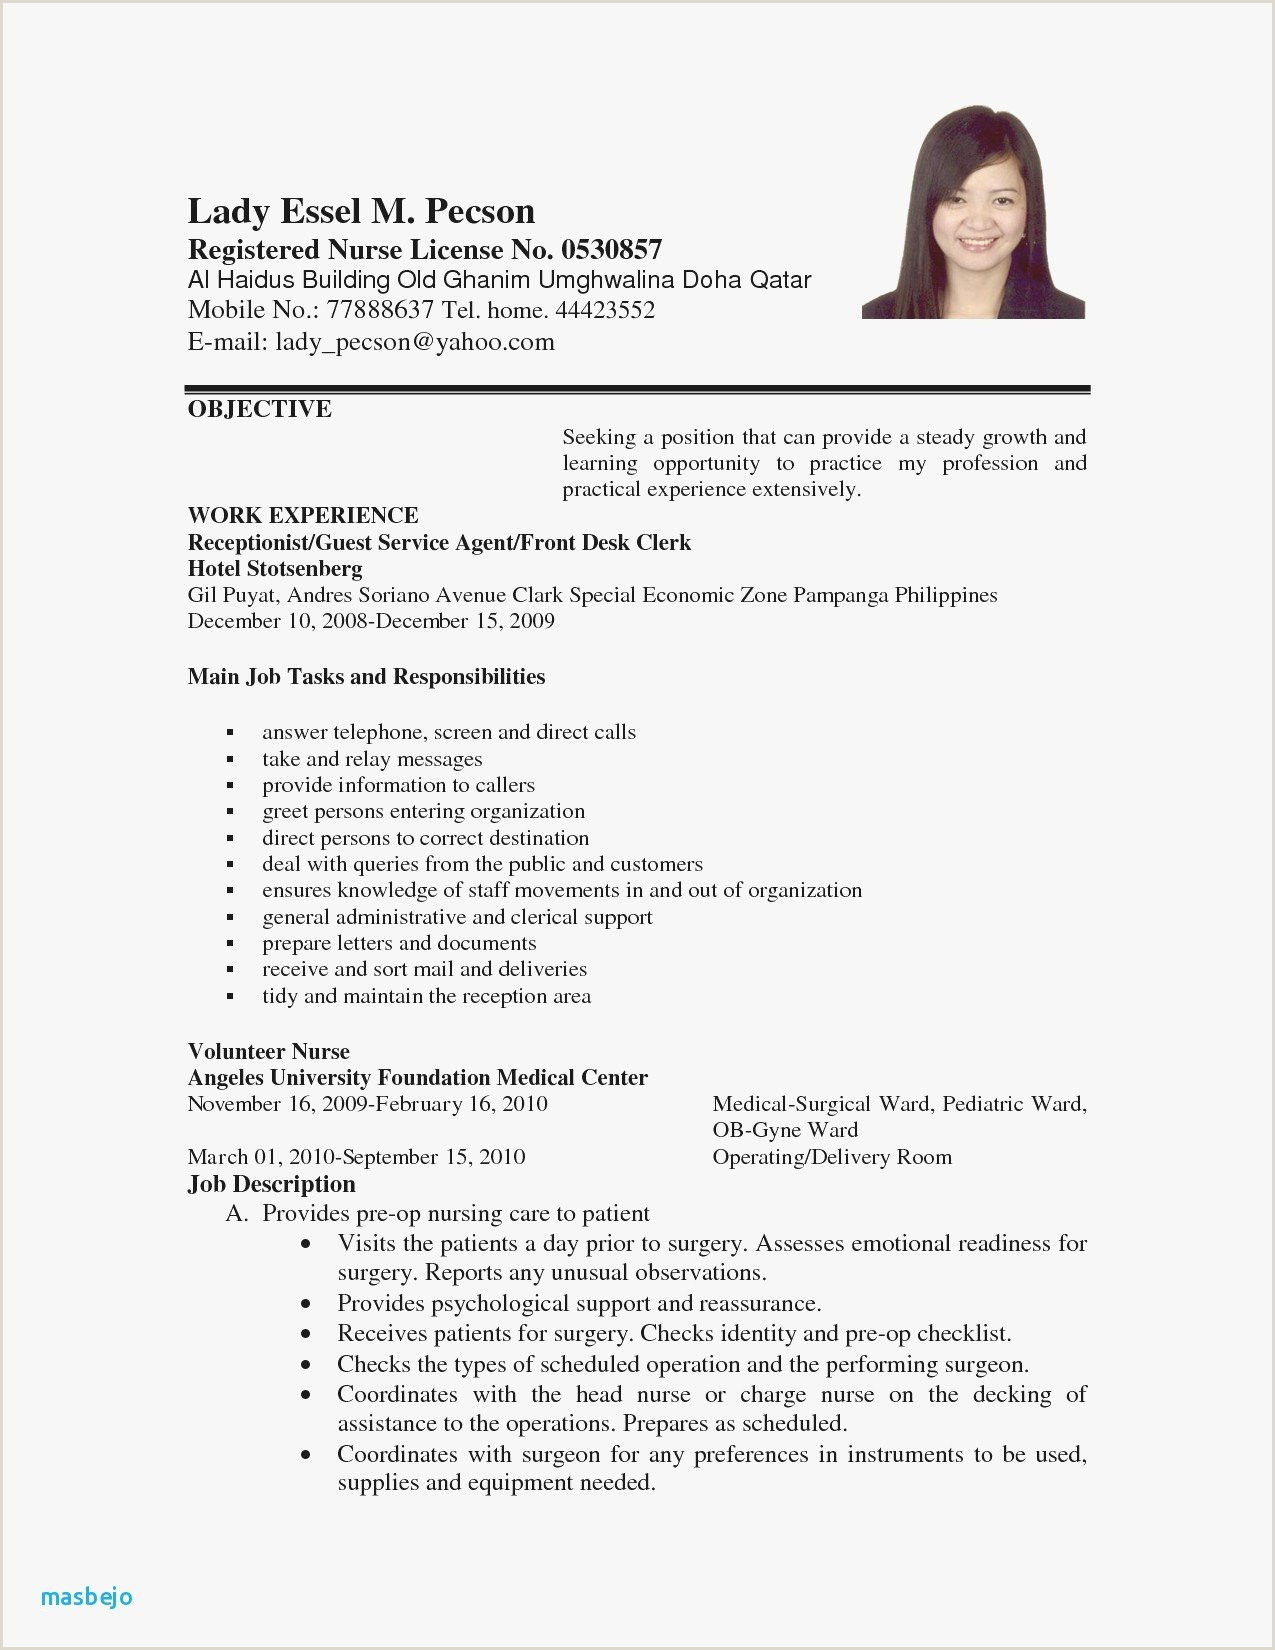 Resume format for Government Job Pdf Resume for Receptionist with No Experience Best Resume